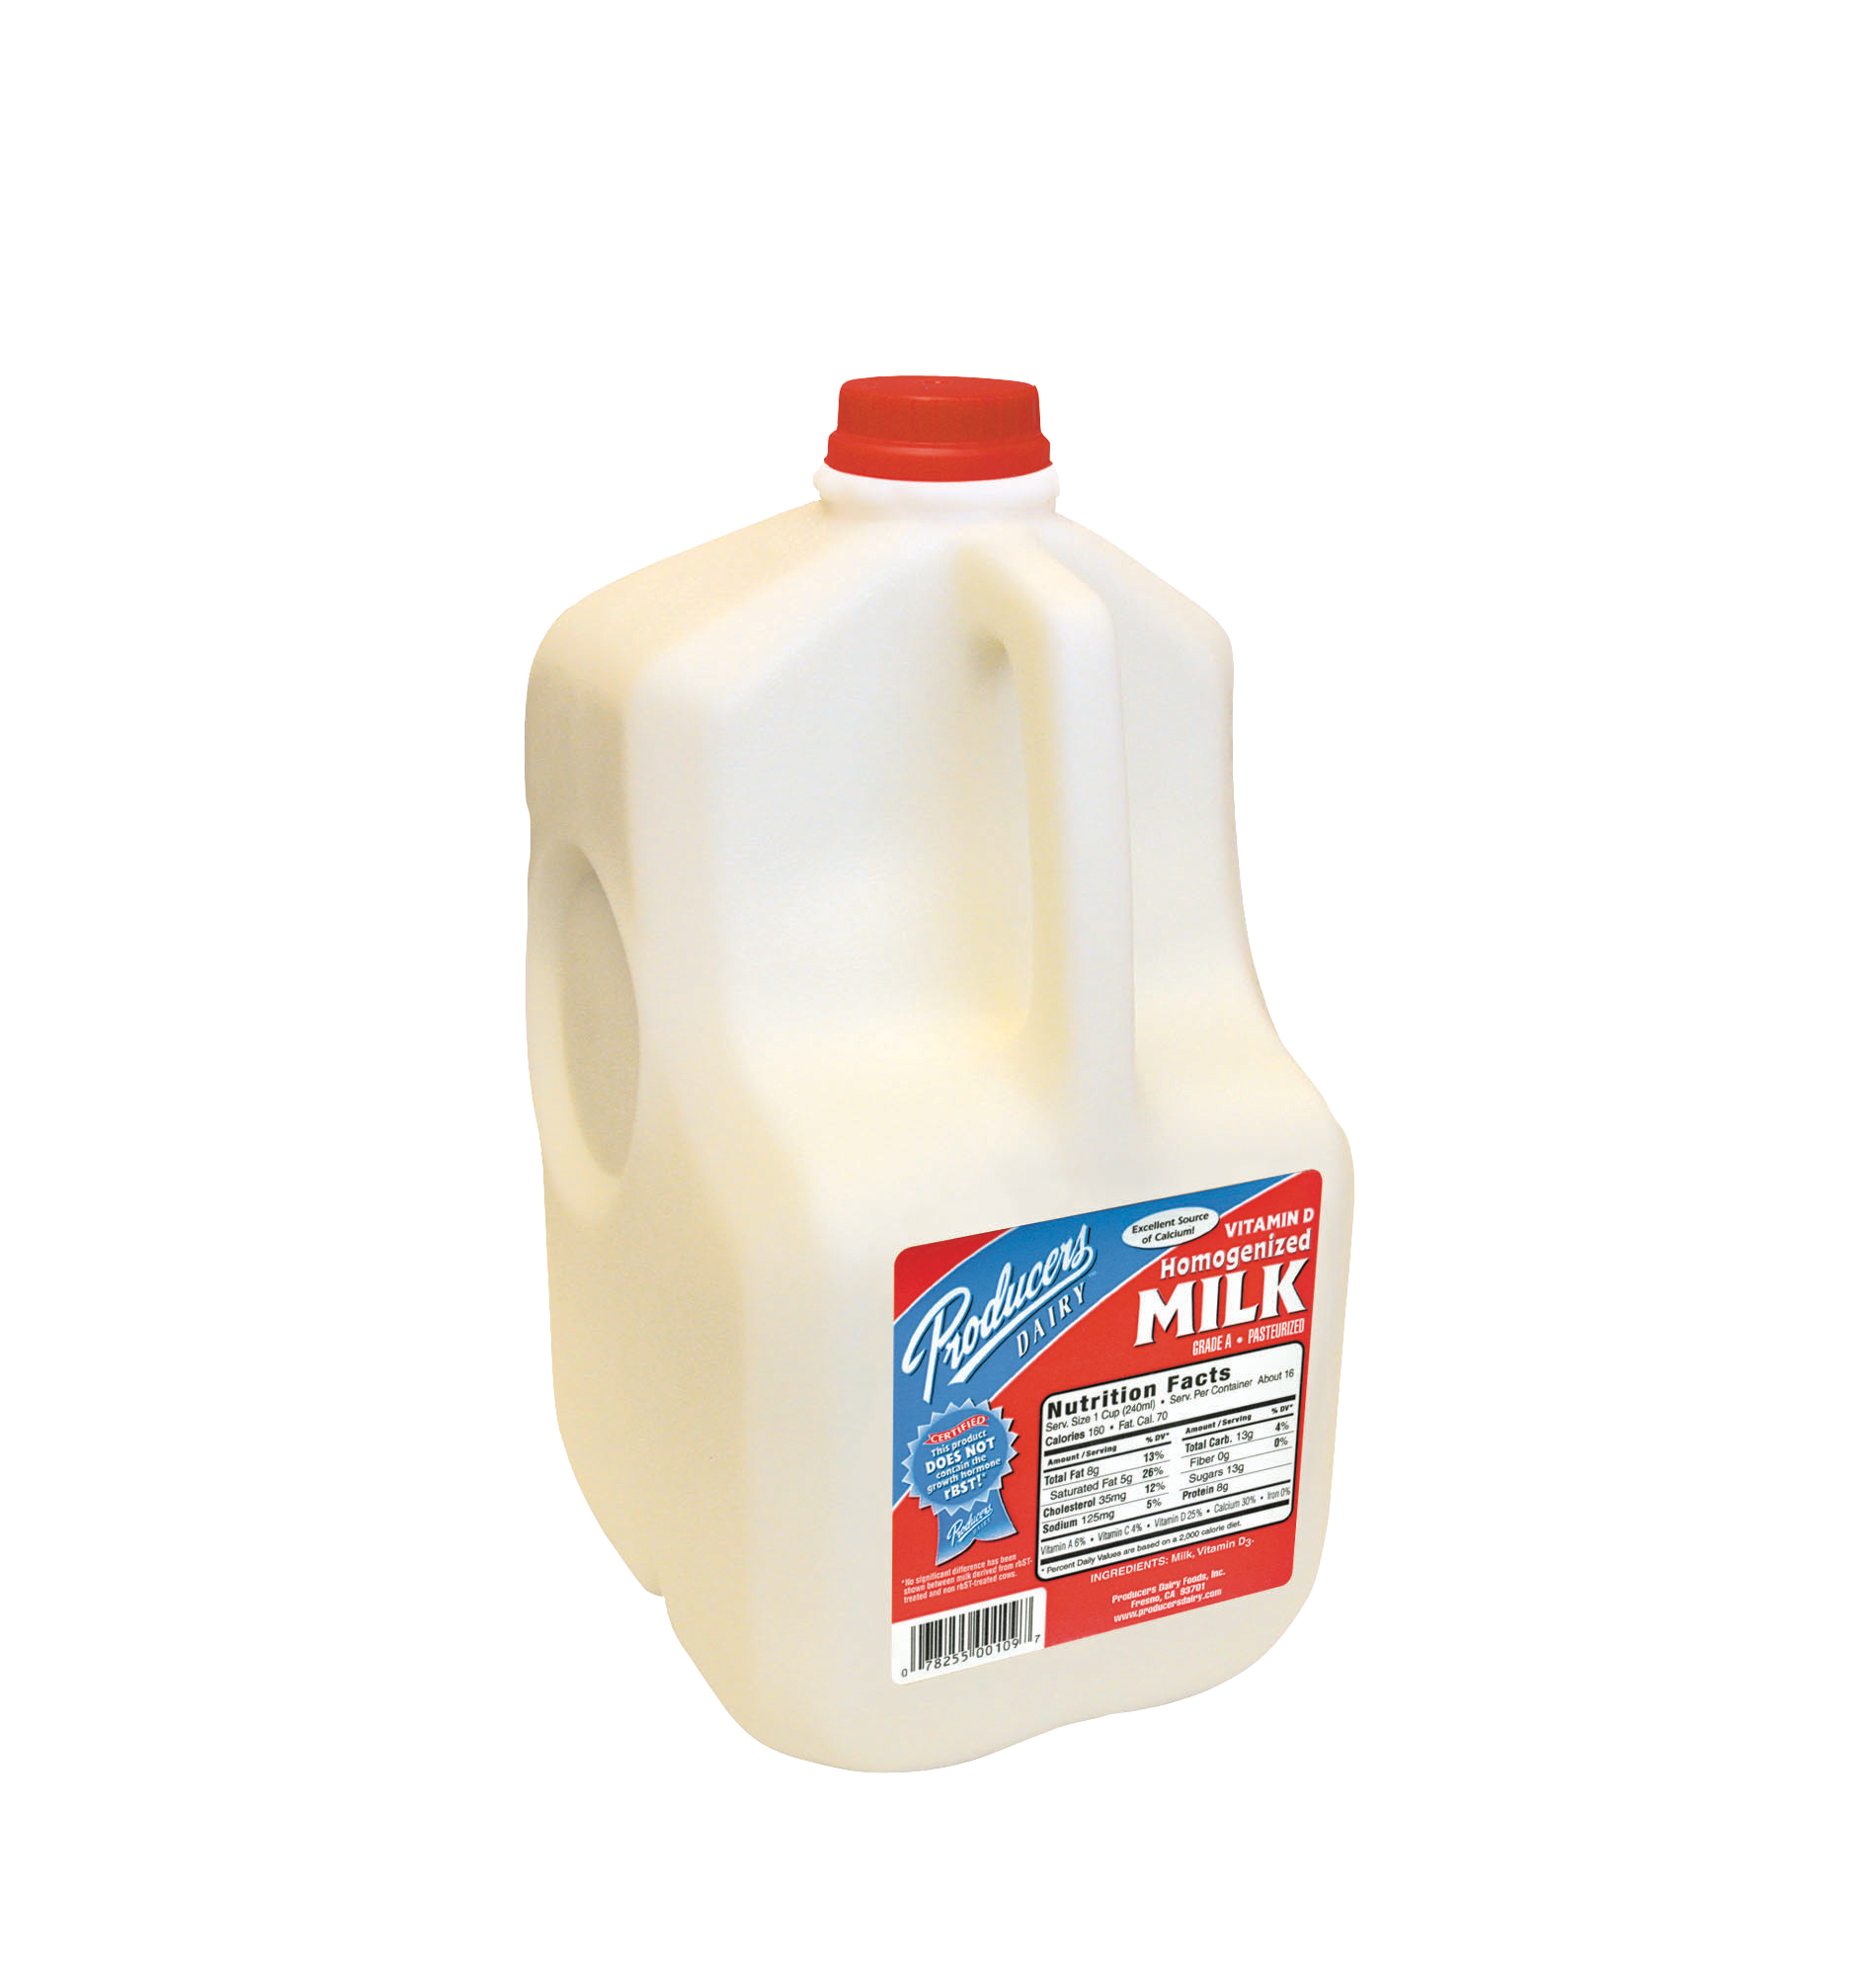 Producers Dairy original Whole Milk plastic gallon container